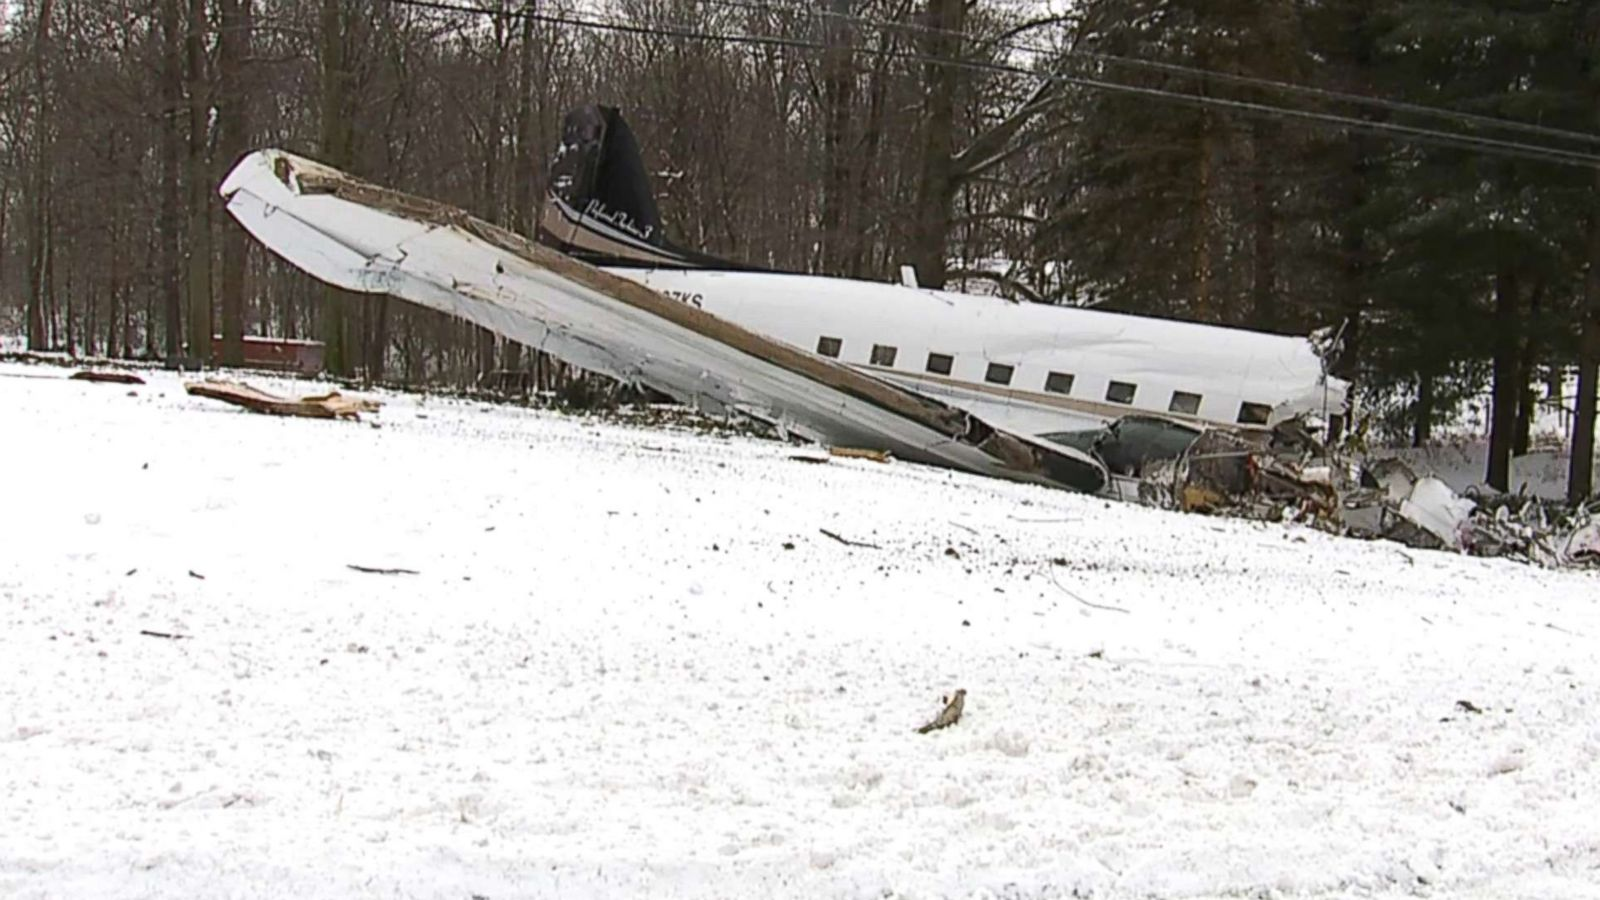 2 men dead in Ohio plane crash, with engine issues possibly the